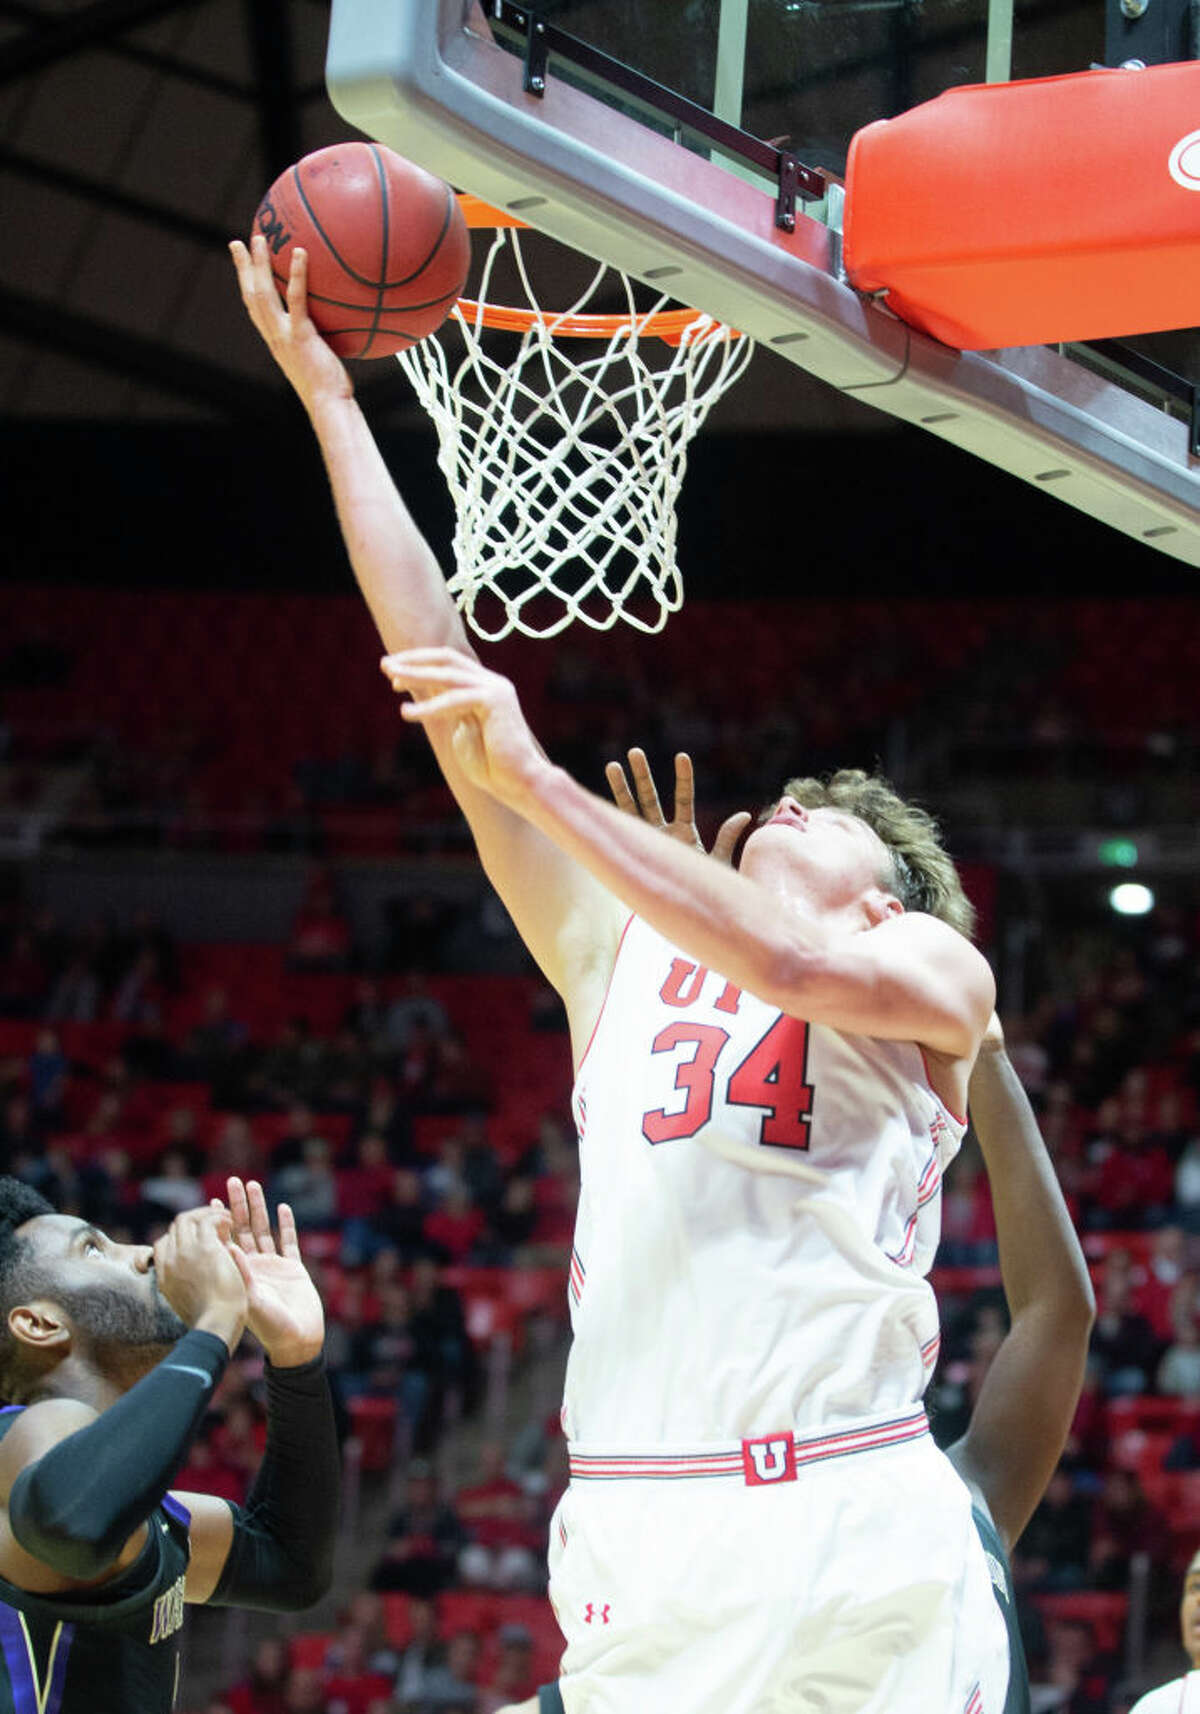 4. Utah Utes (14-11, 8-5 Pac-12) A bad 11-point loss to Arizona State last week snapped the Utah's three-game winning streak, but the Utes remain solidly in the conference's upper tier. With three straight road games coming up (including a clash with top-ranked Washington), Utah will need to bounce back in a hurry.